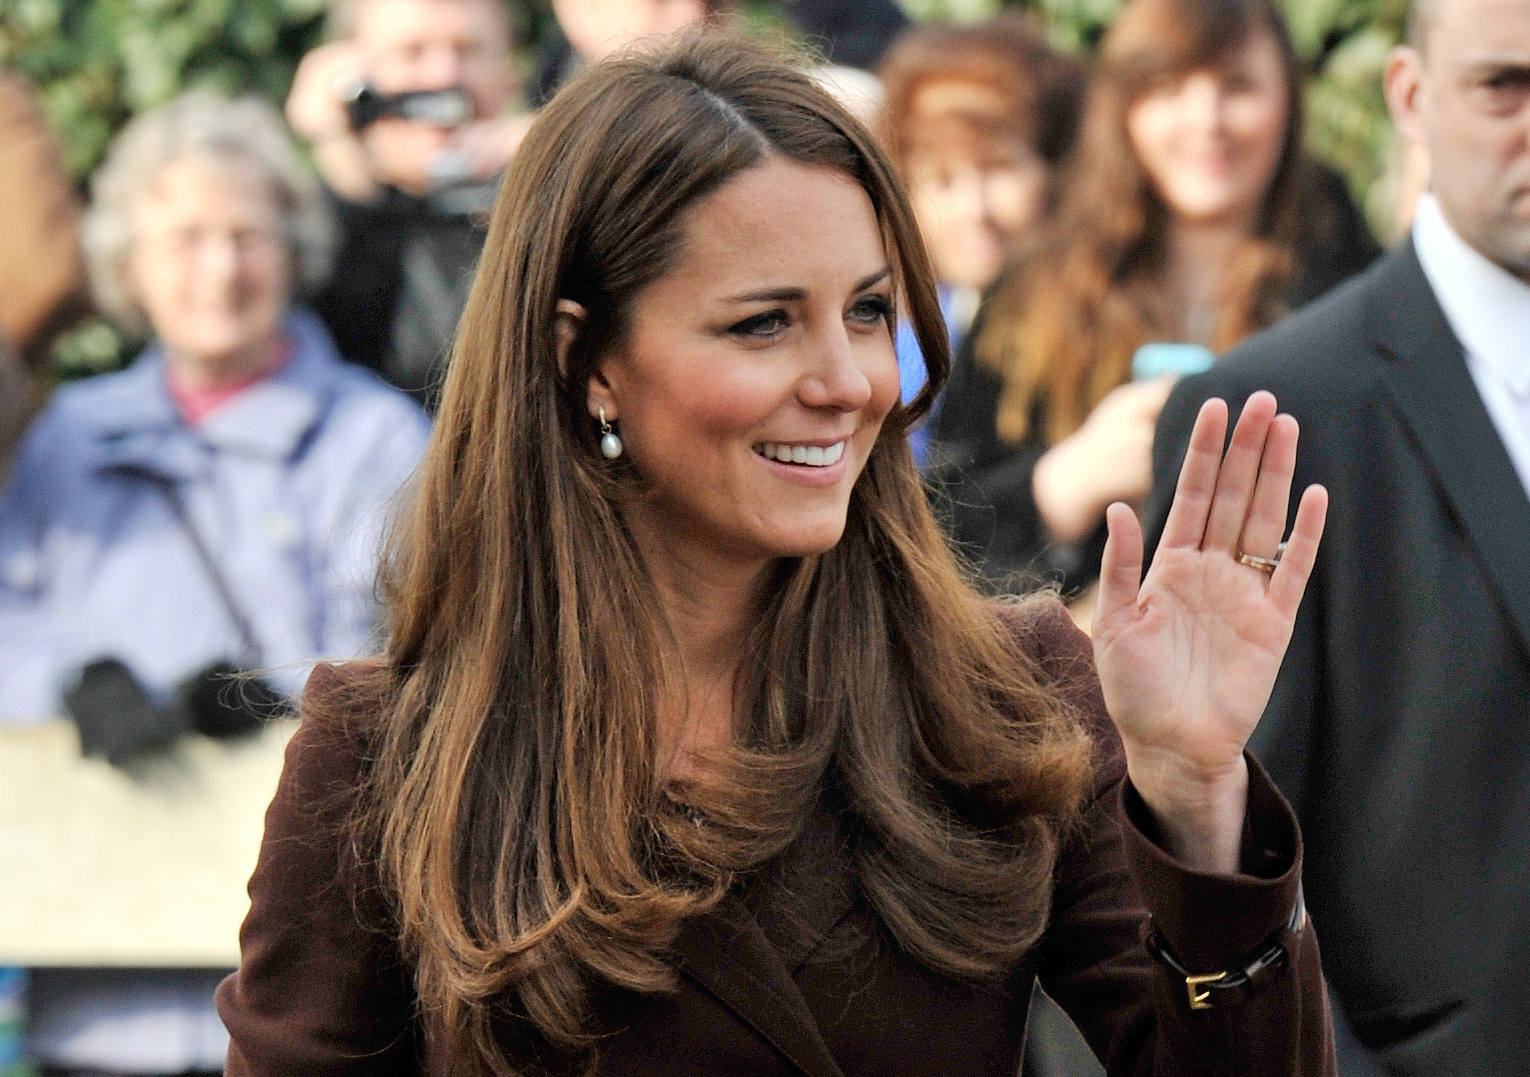 Book News: Hilary Mantel Has 'No Regrets' About Kate Middleton Remarks : NPR